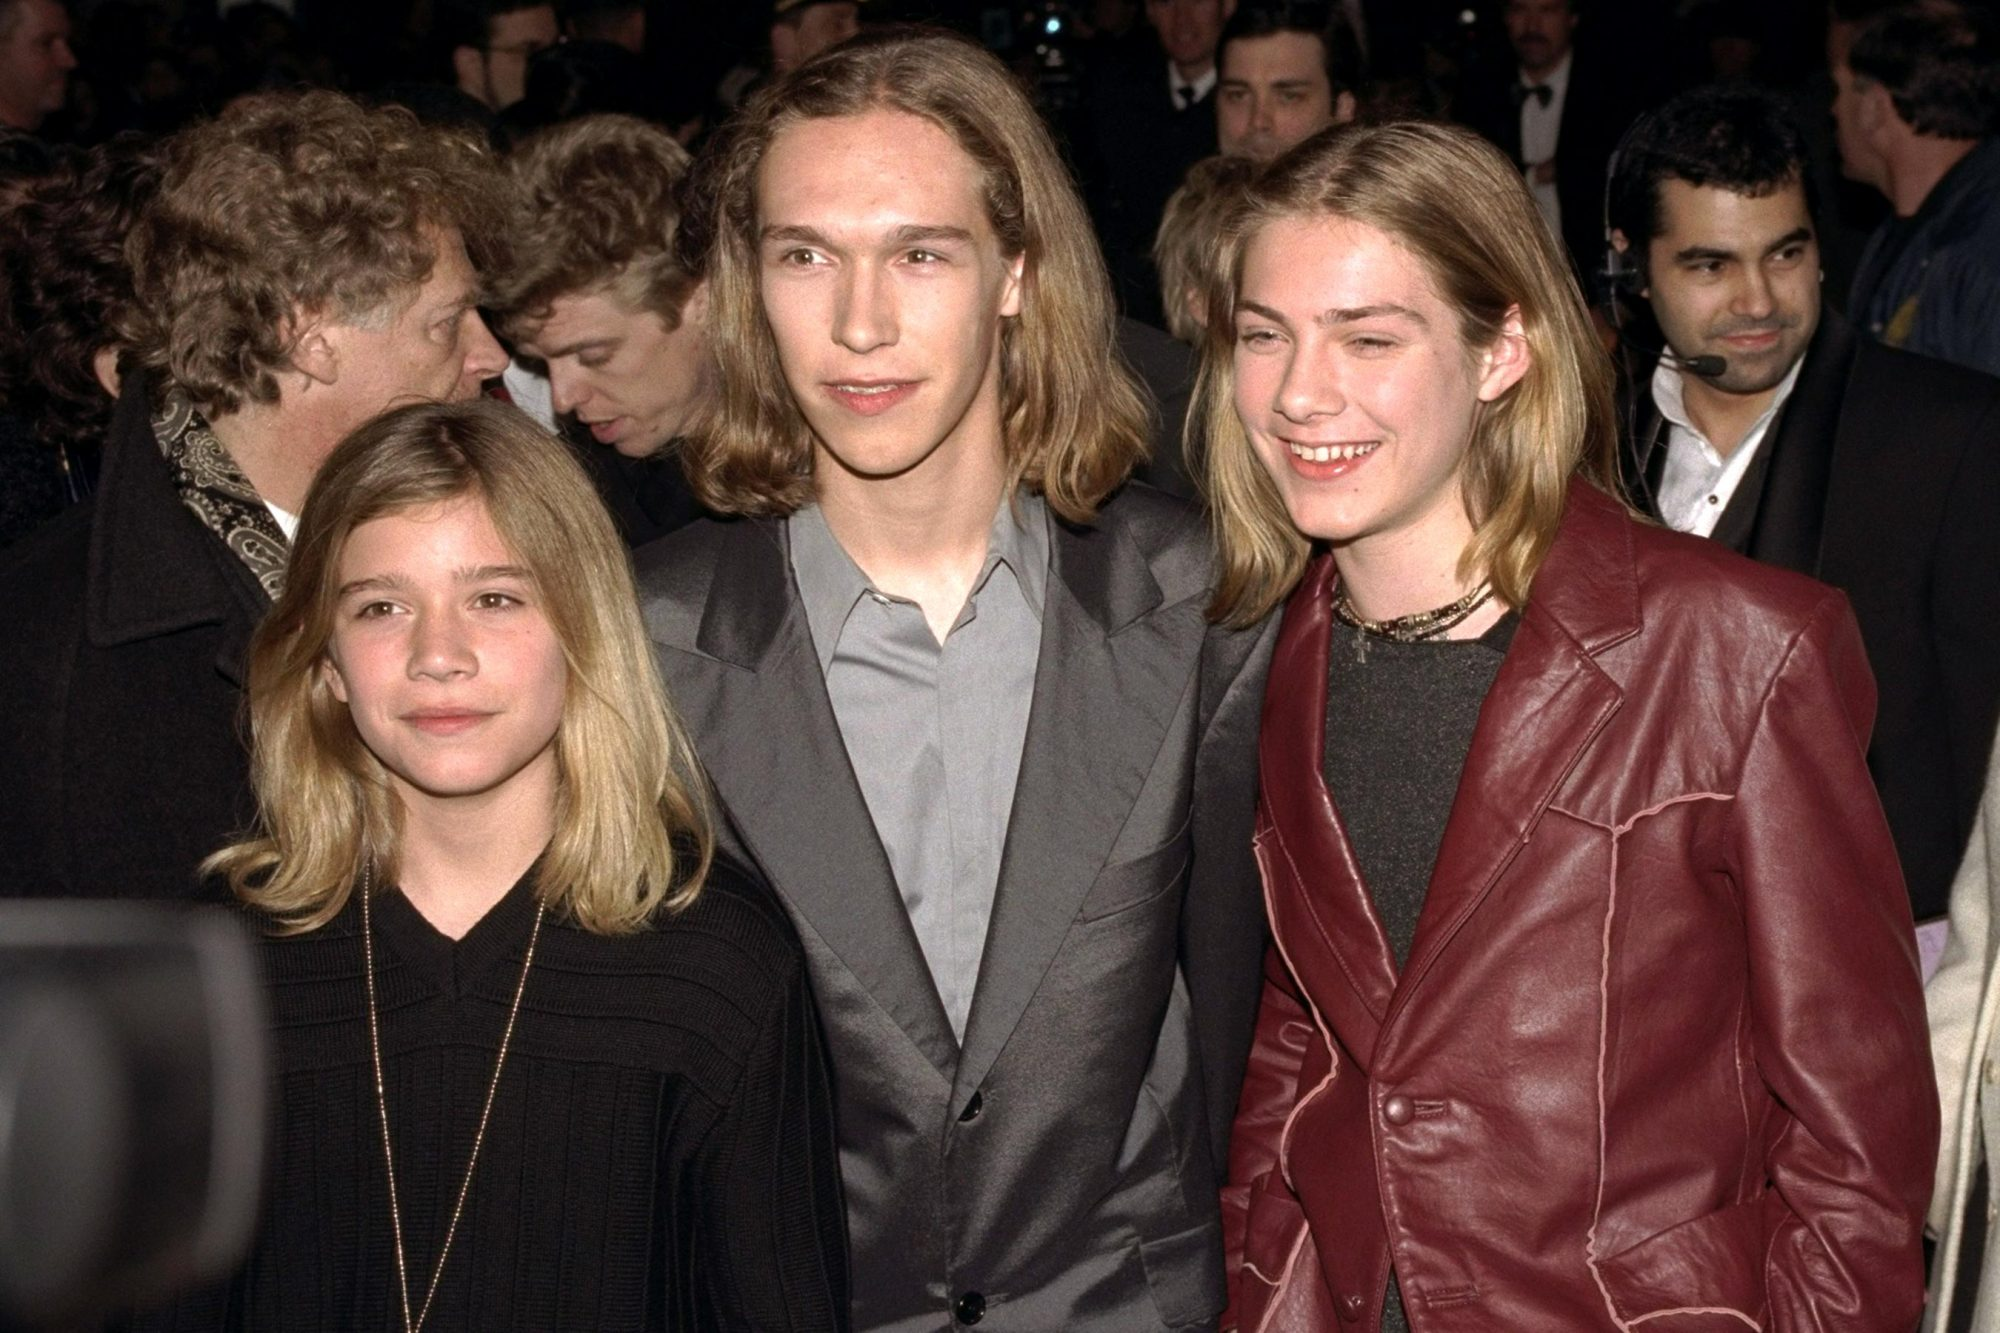 Pop trio Hanson arriving for the Grammy Awards at Radio City